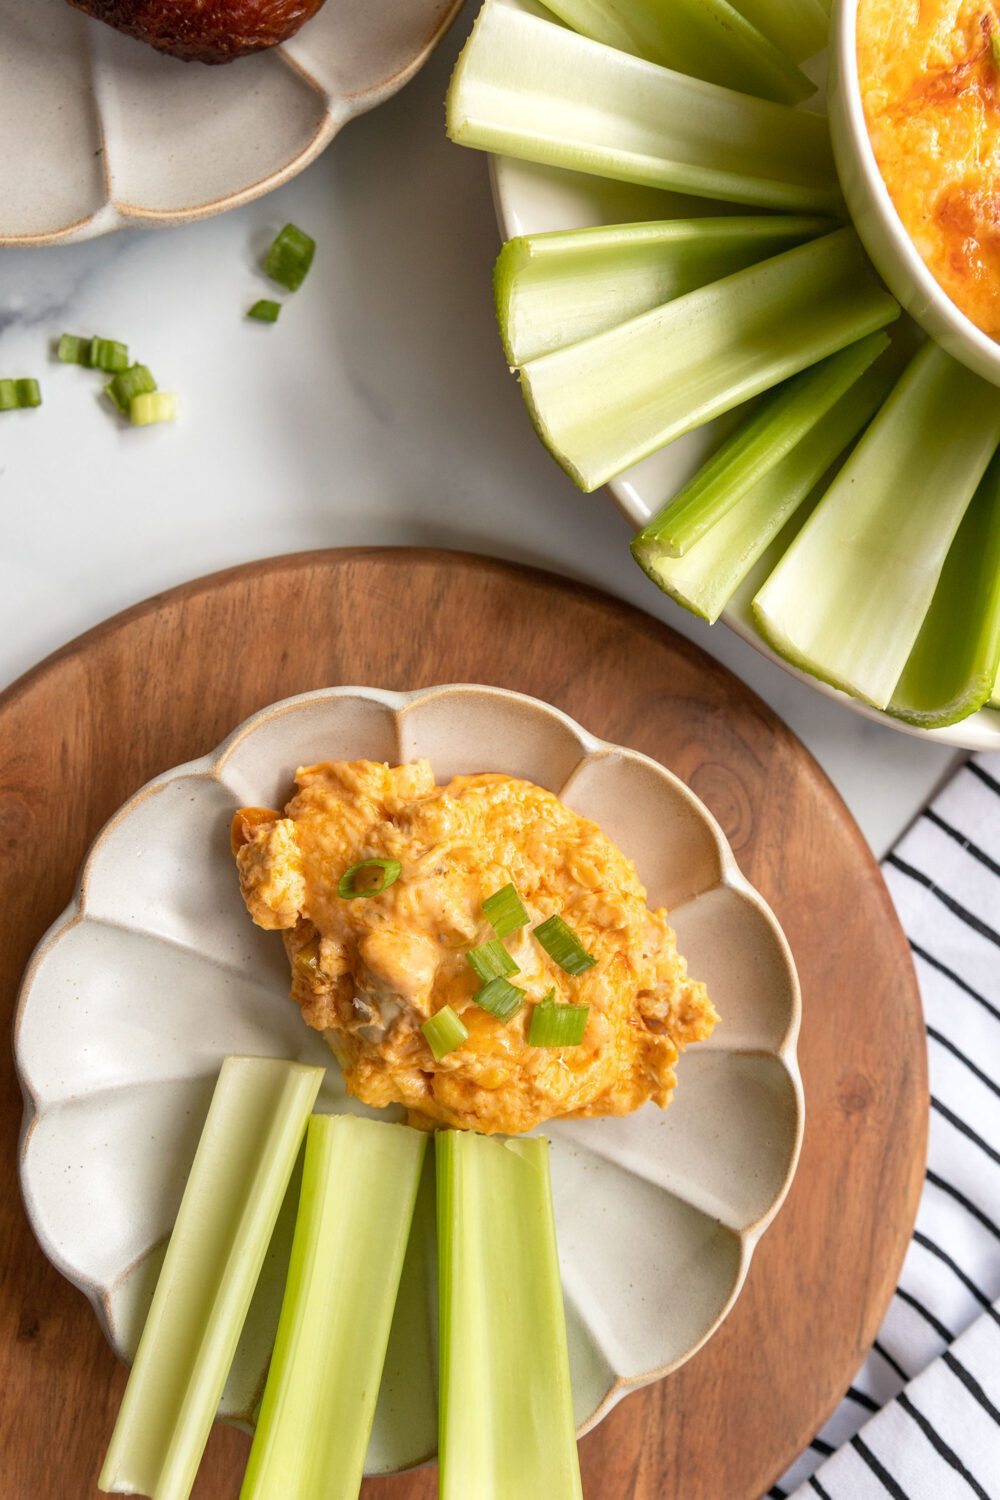 plate with celery sticks and a scoop of buffalo chicken dip